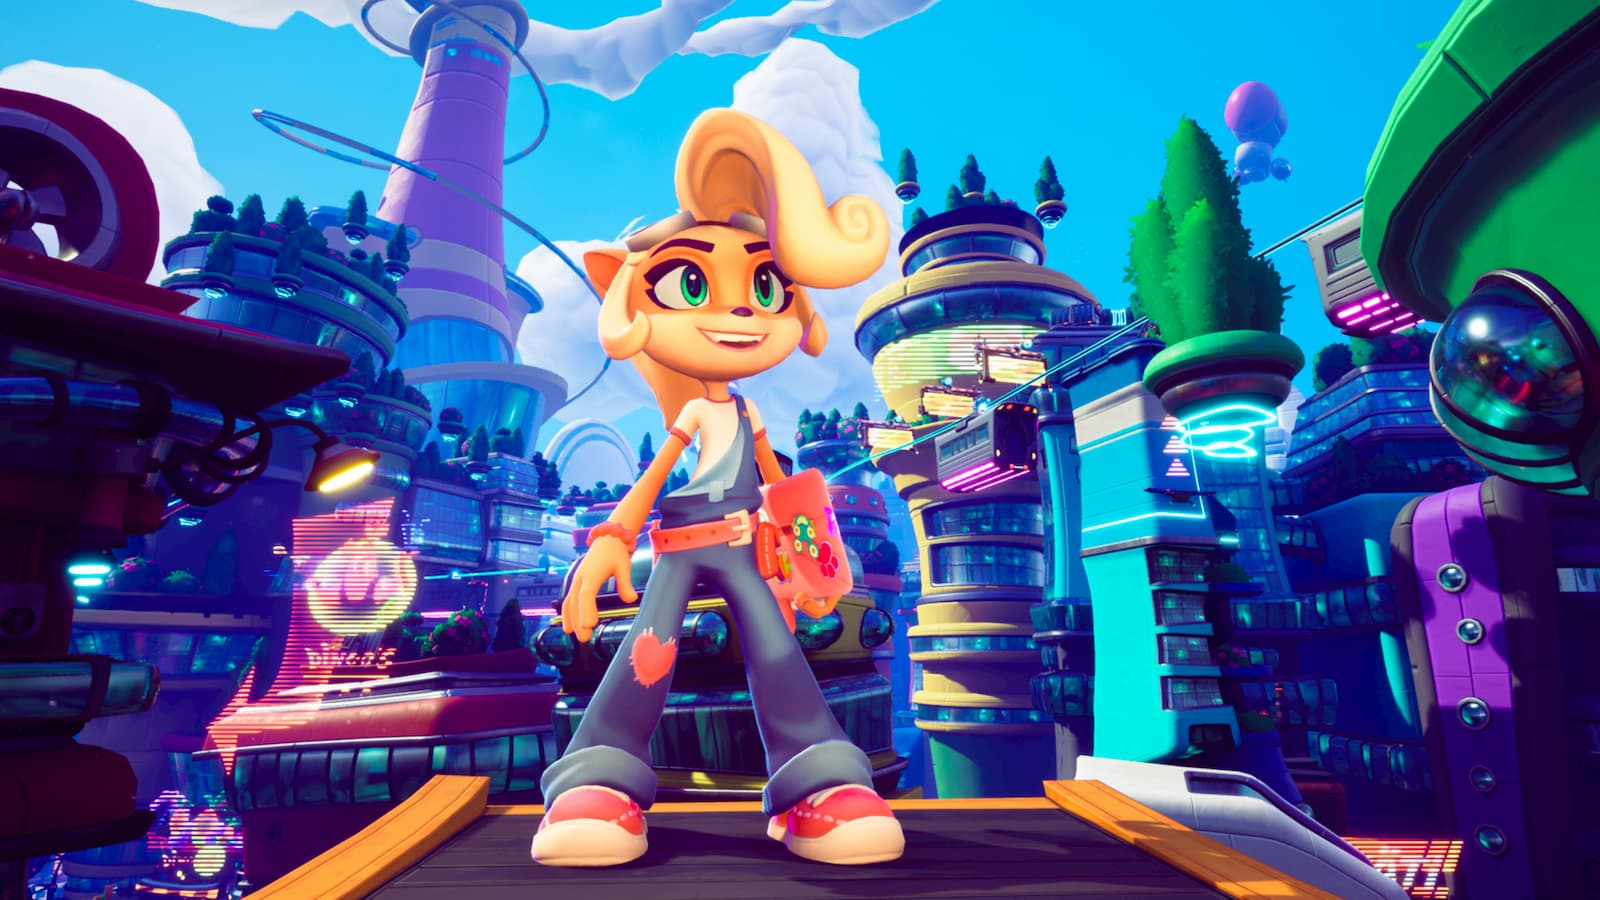 Coco in Crash Bandicoot 4: It's About Time